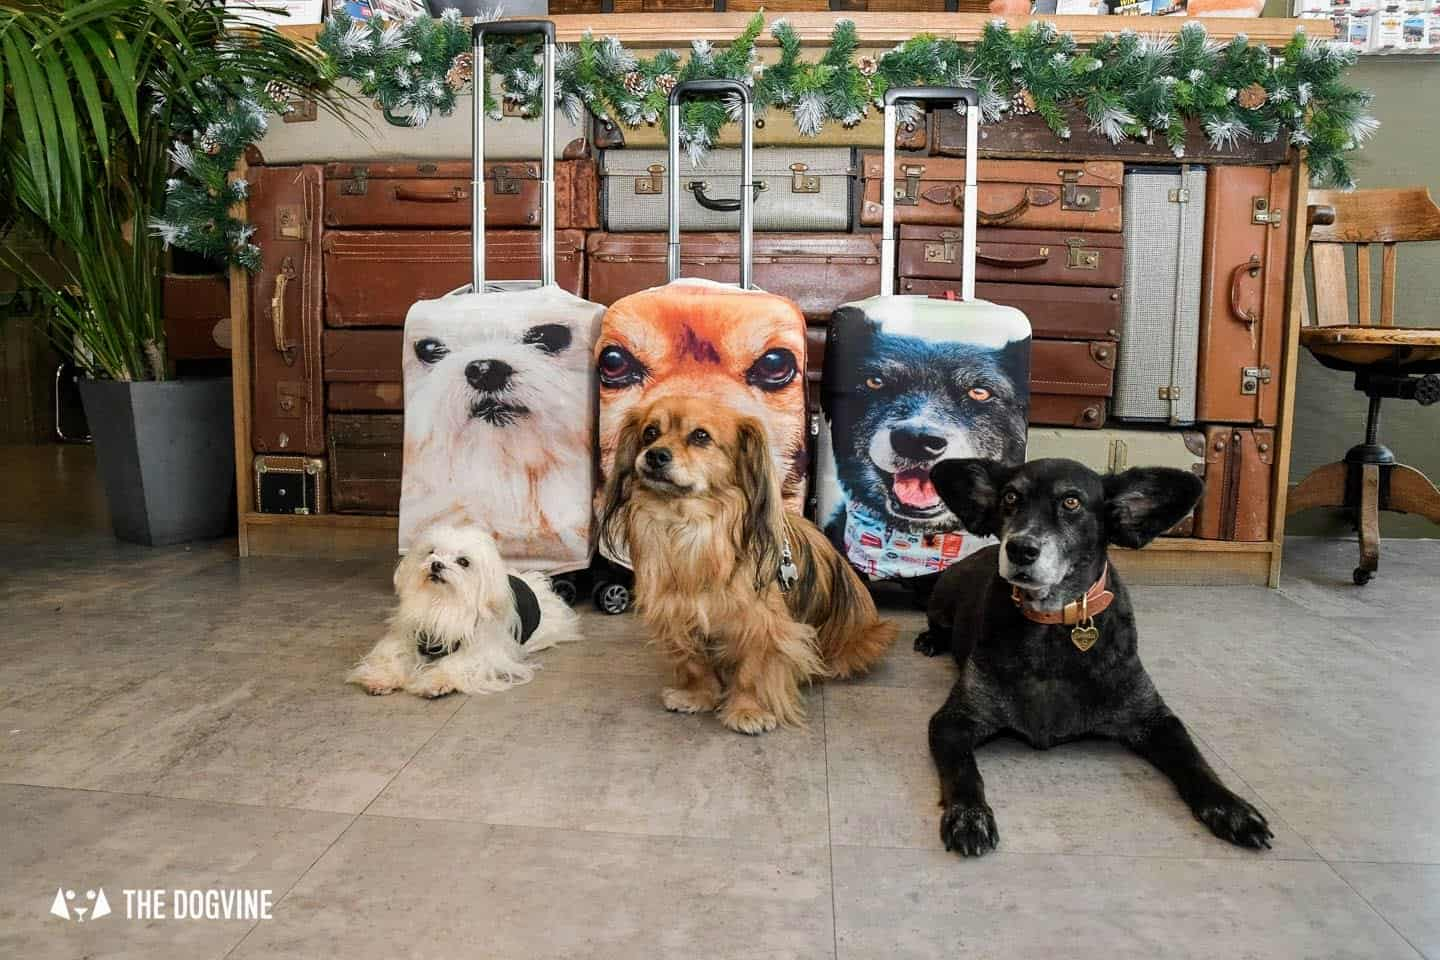 The Best Personalised Pet Gifts For Dog Owners - Firebox Pet Head Luggage Cover - At The Hotel